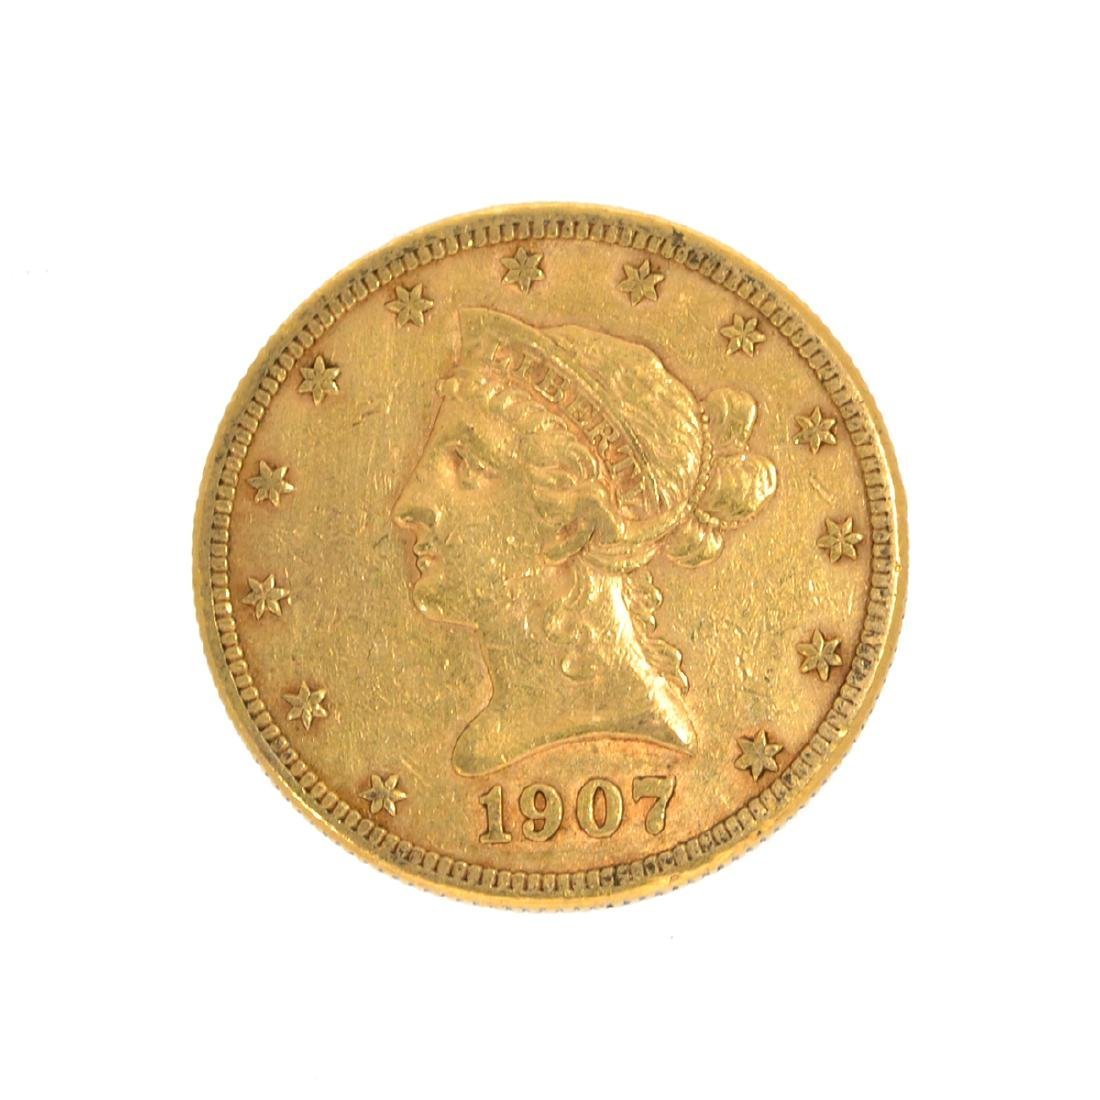 *1907-S $10 U.S. Liberty Head Gold Coin (DF)